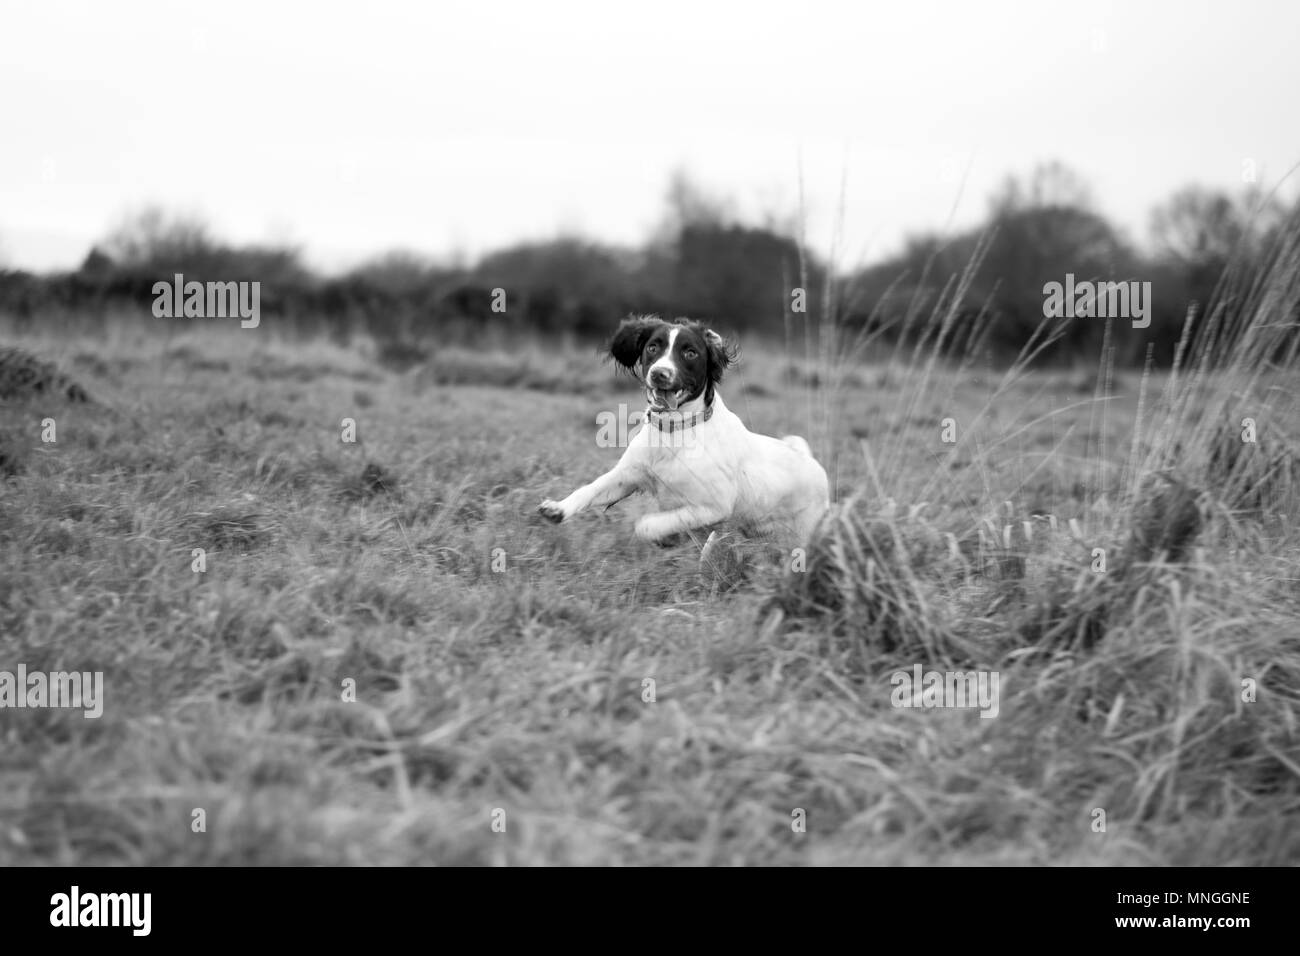 Dog running through a field - Stock Image